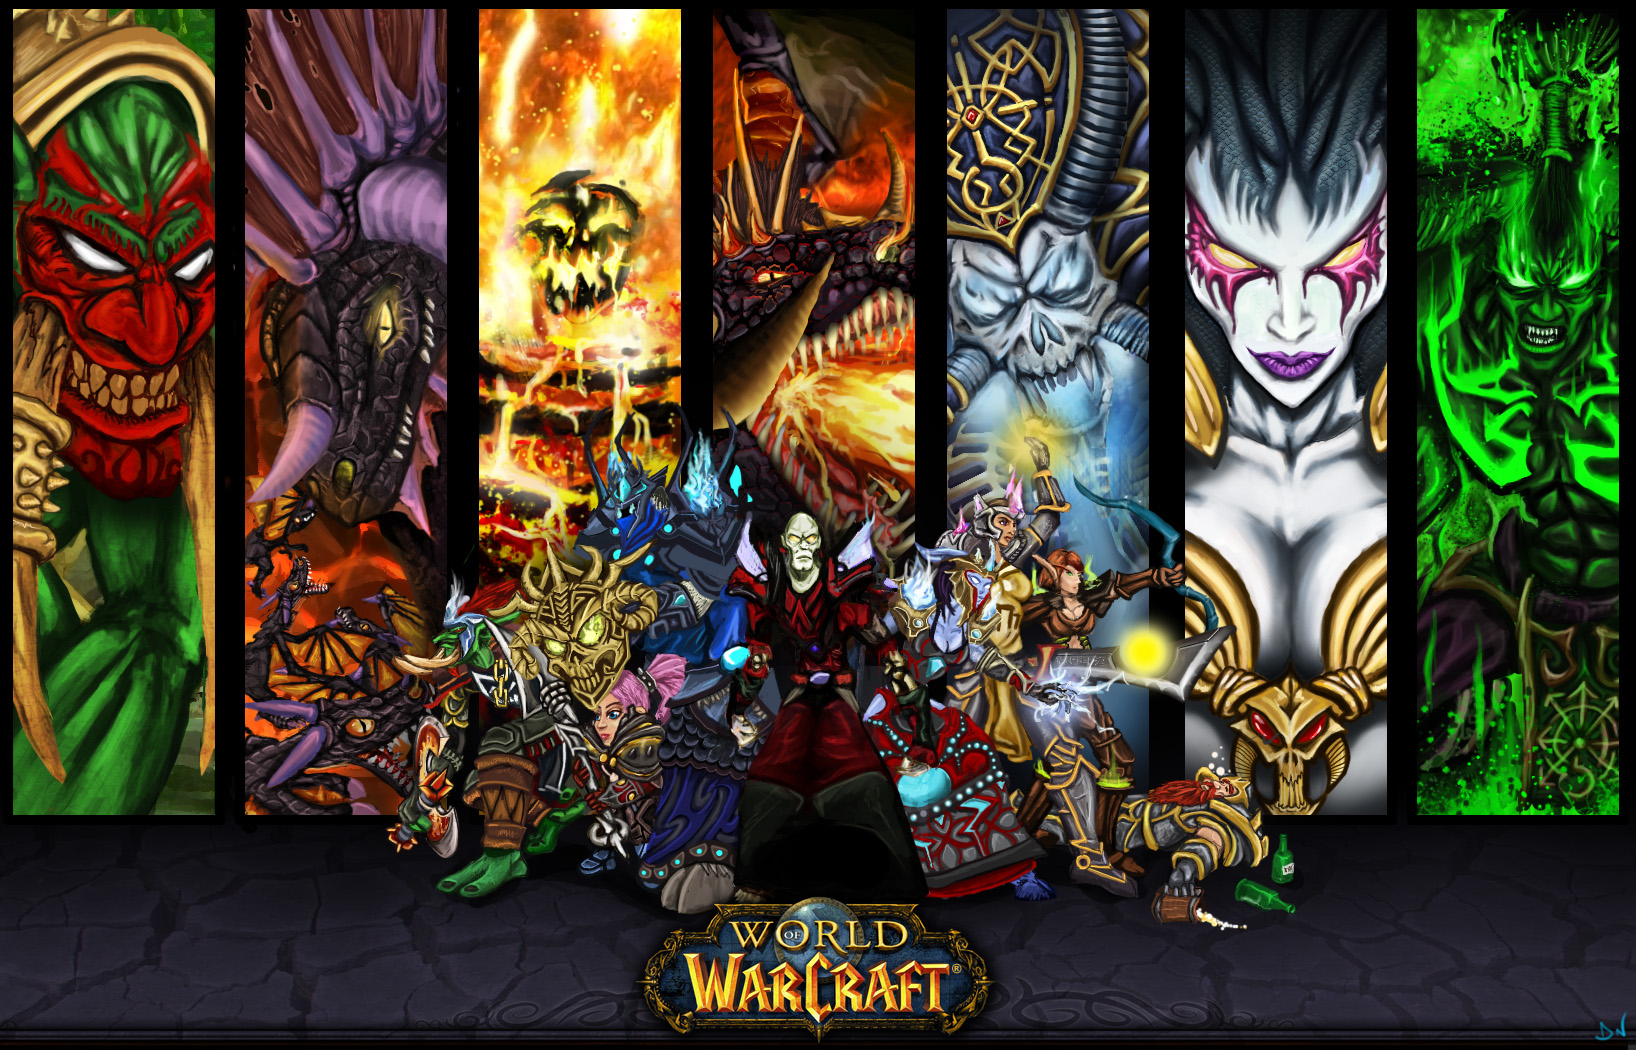 Download World Of Warcraft HD Wallpaper 2151 Full Size 1636x1050